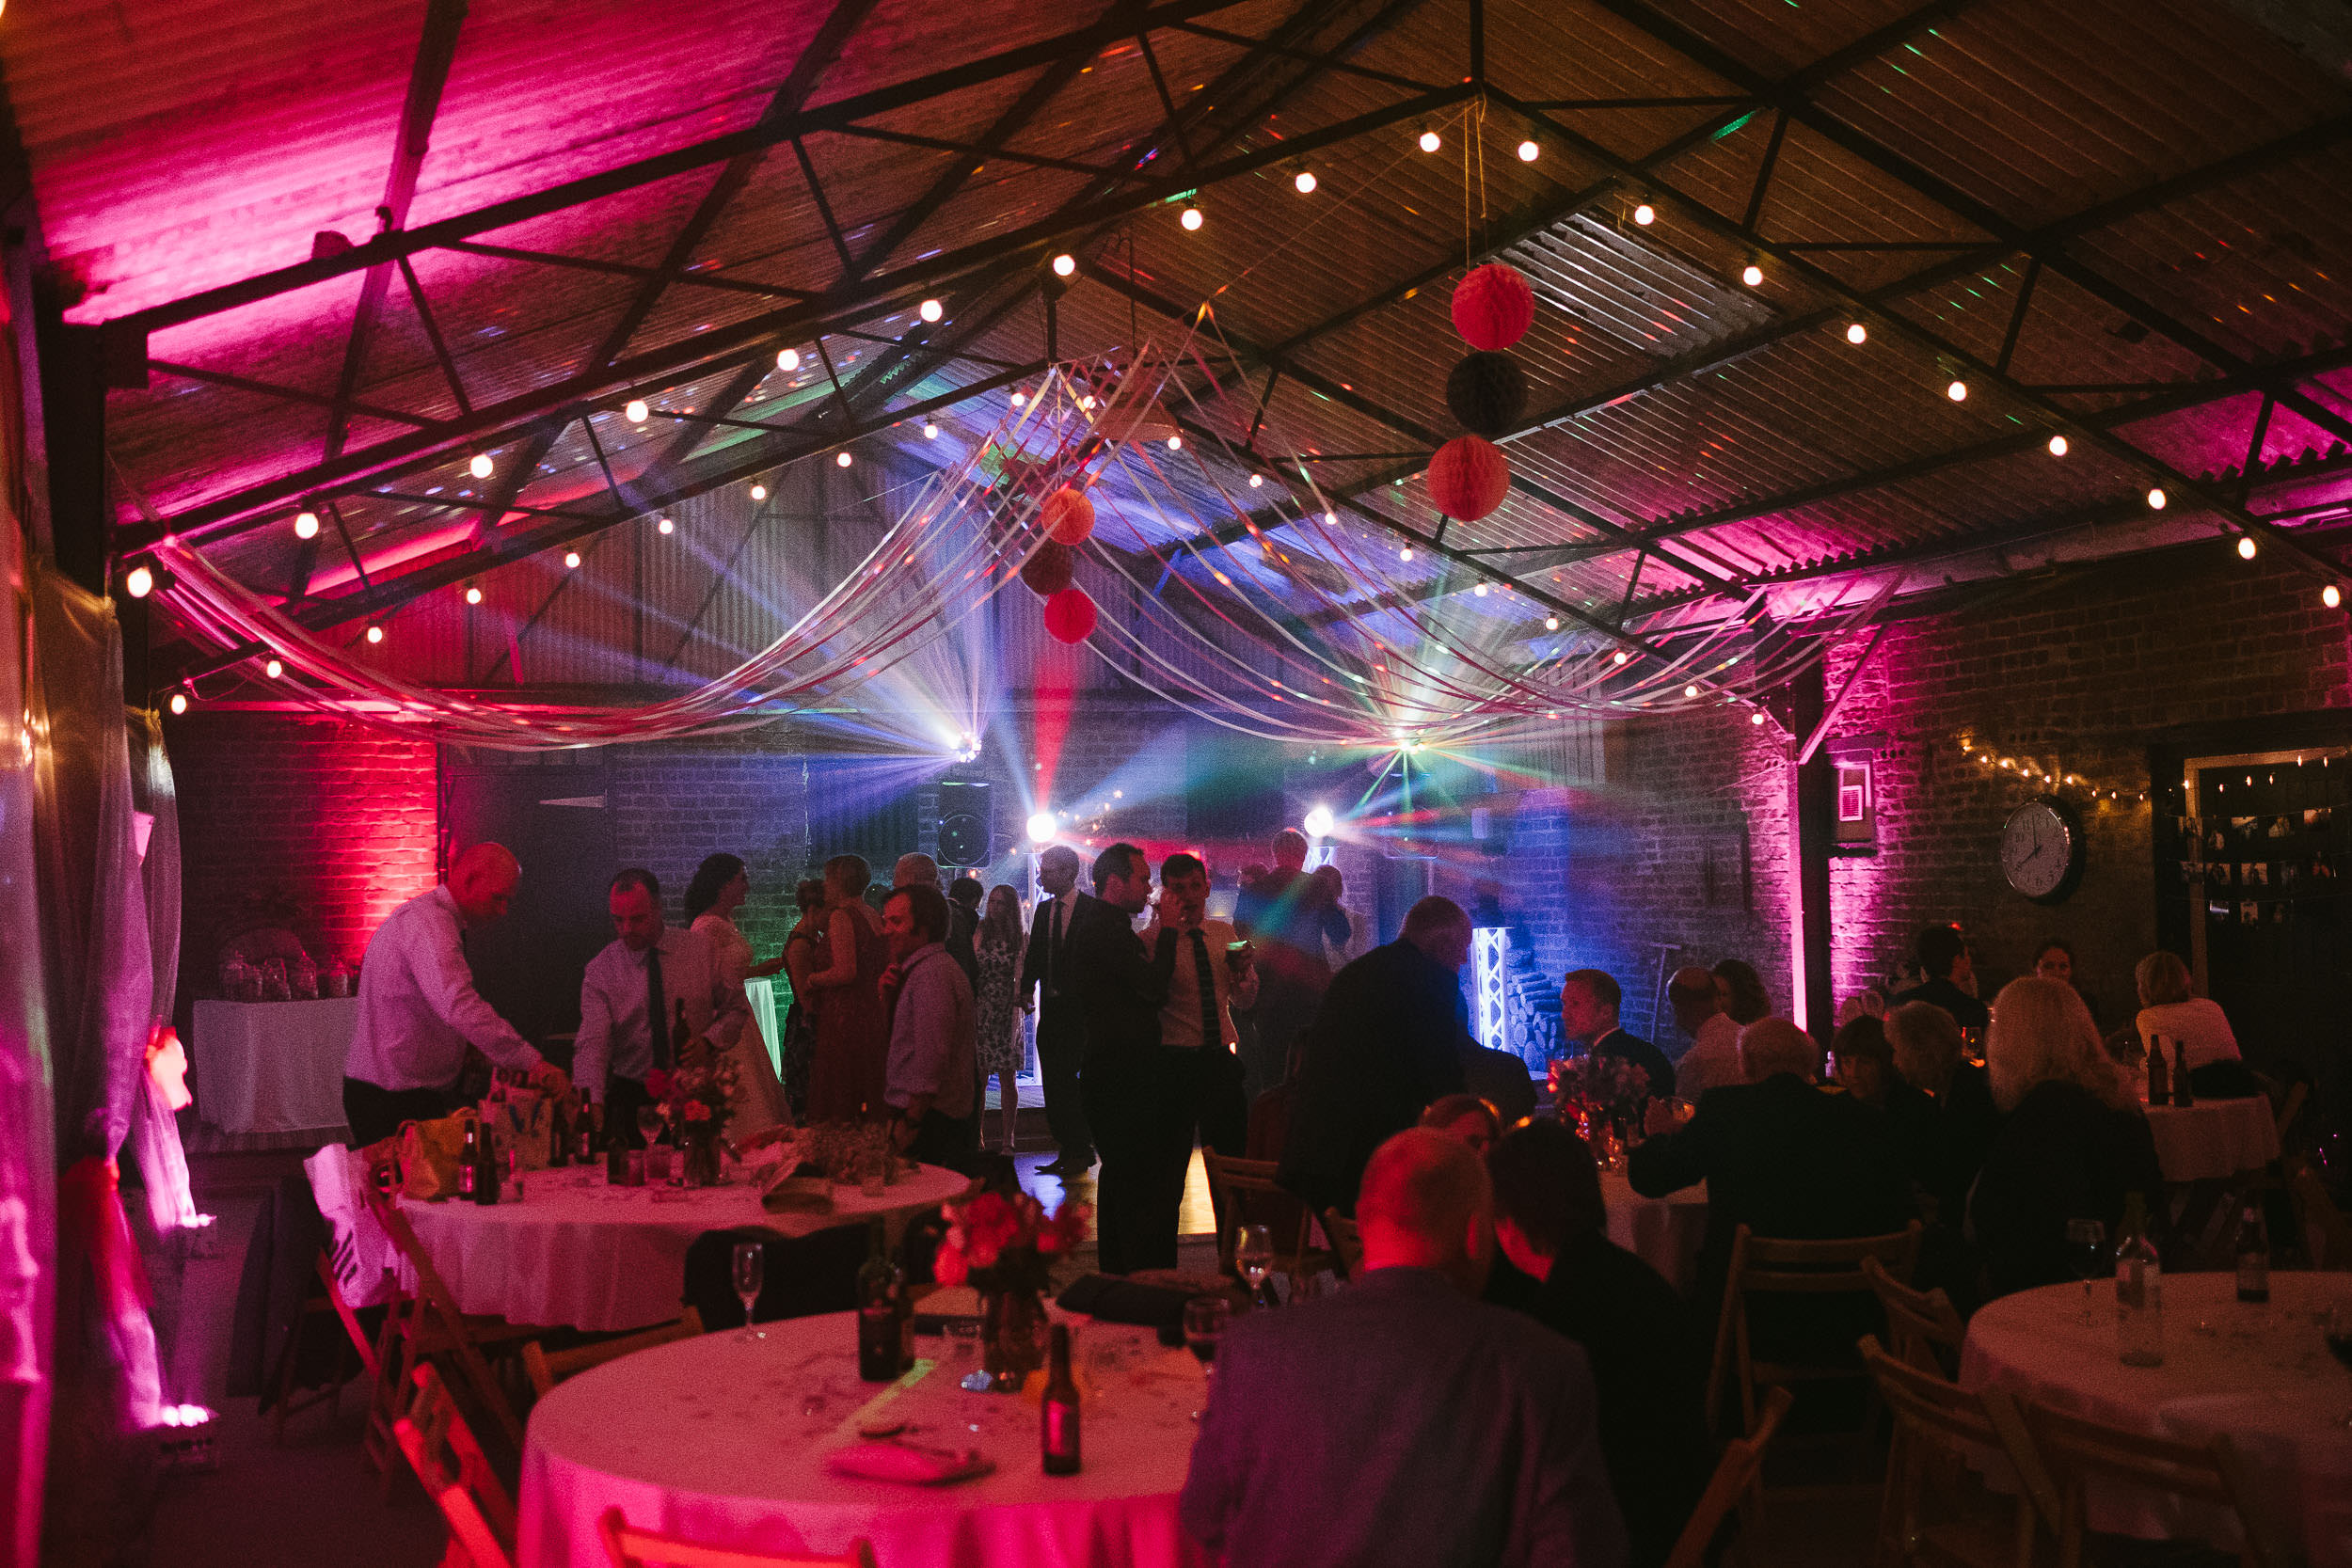 The Old Barn set up for the evening party